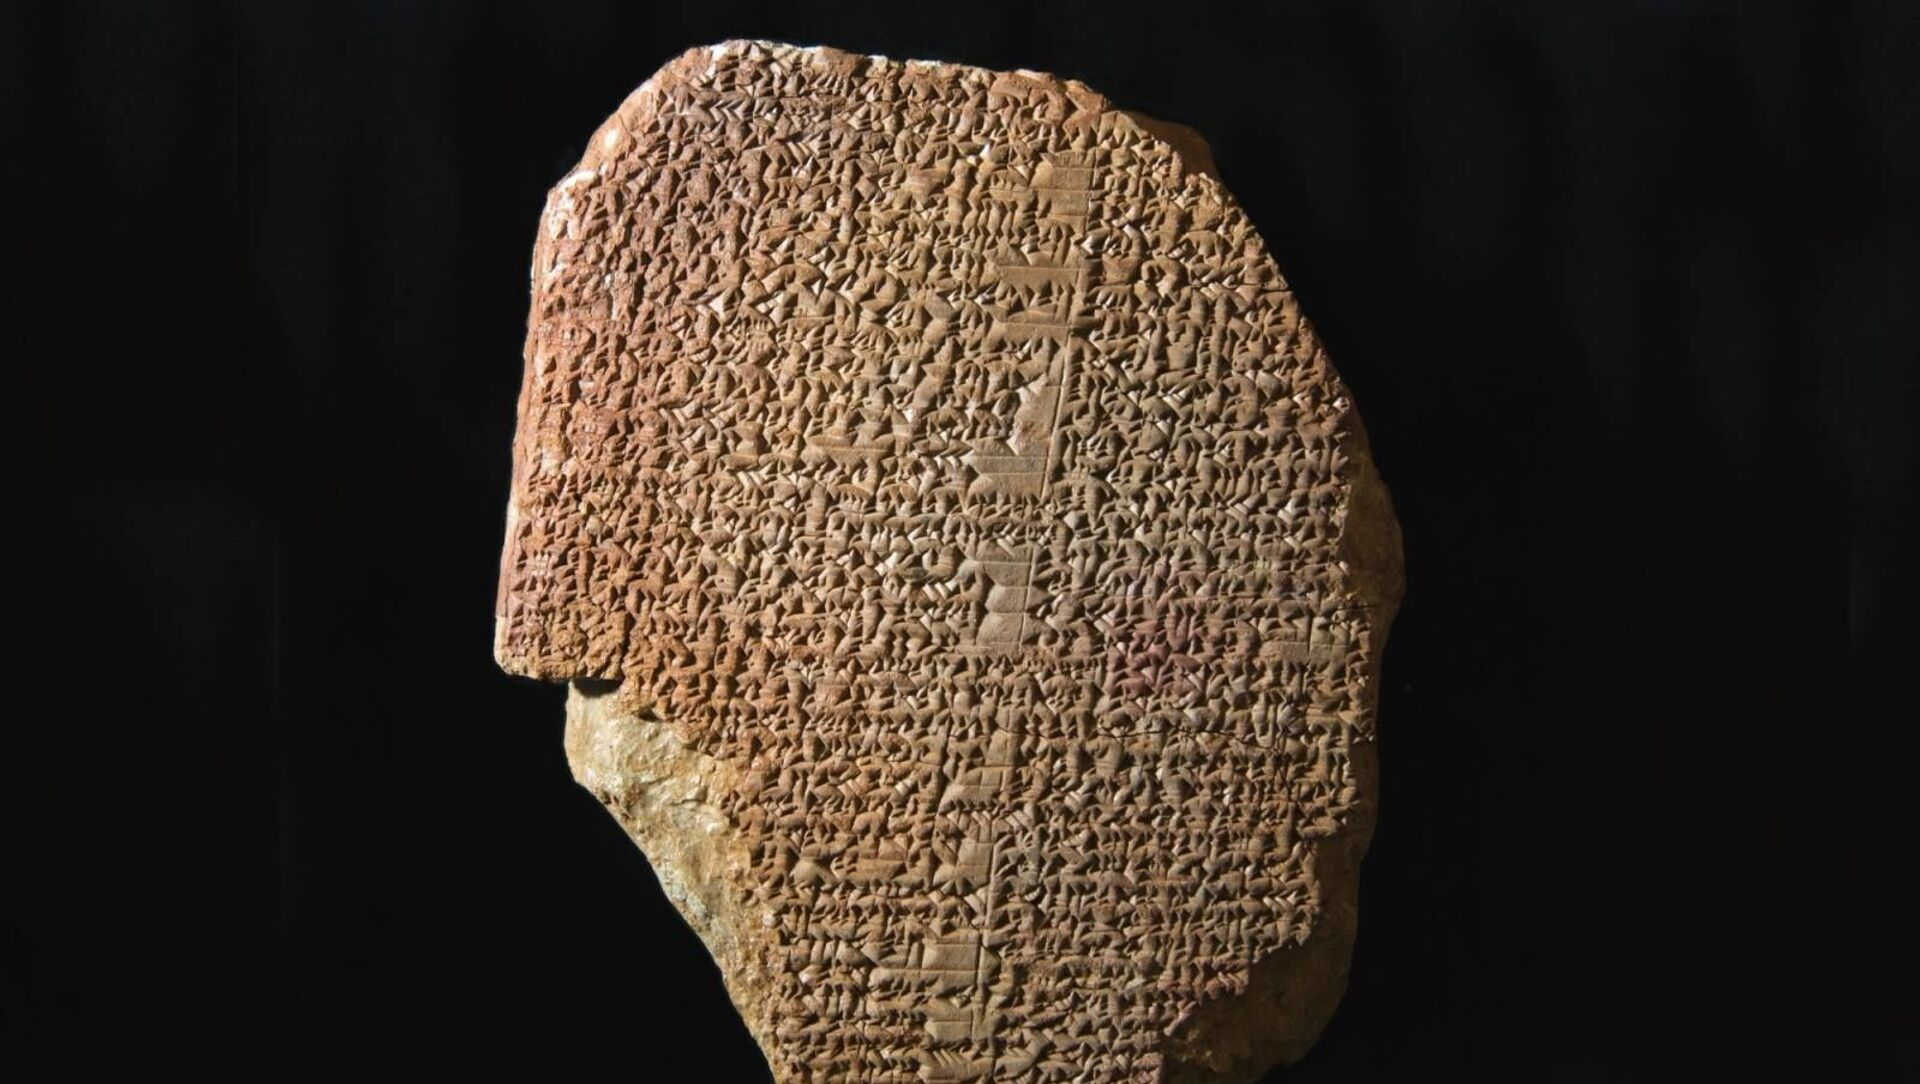 The Gilgamesh Epic is a term used for an extended narrative from the first millennium, but which is composed from older texts that exist in the Sumerian, Akkadian, Hittite, and Hurrian languages. It bears some connections with biblical texts, and tells, among other things, the story of a great flood. - Sputnik International, 1920, 27.07.2021